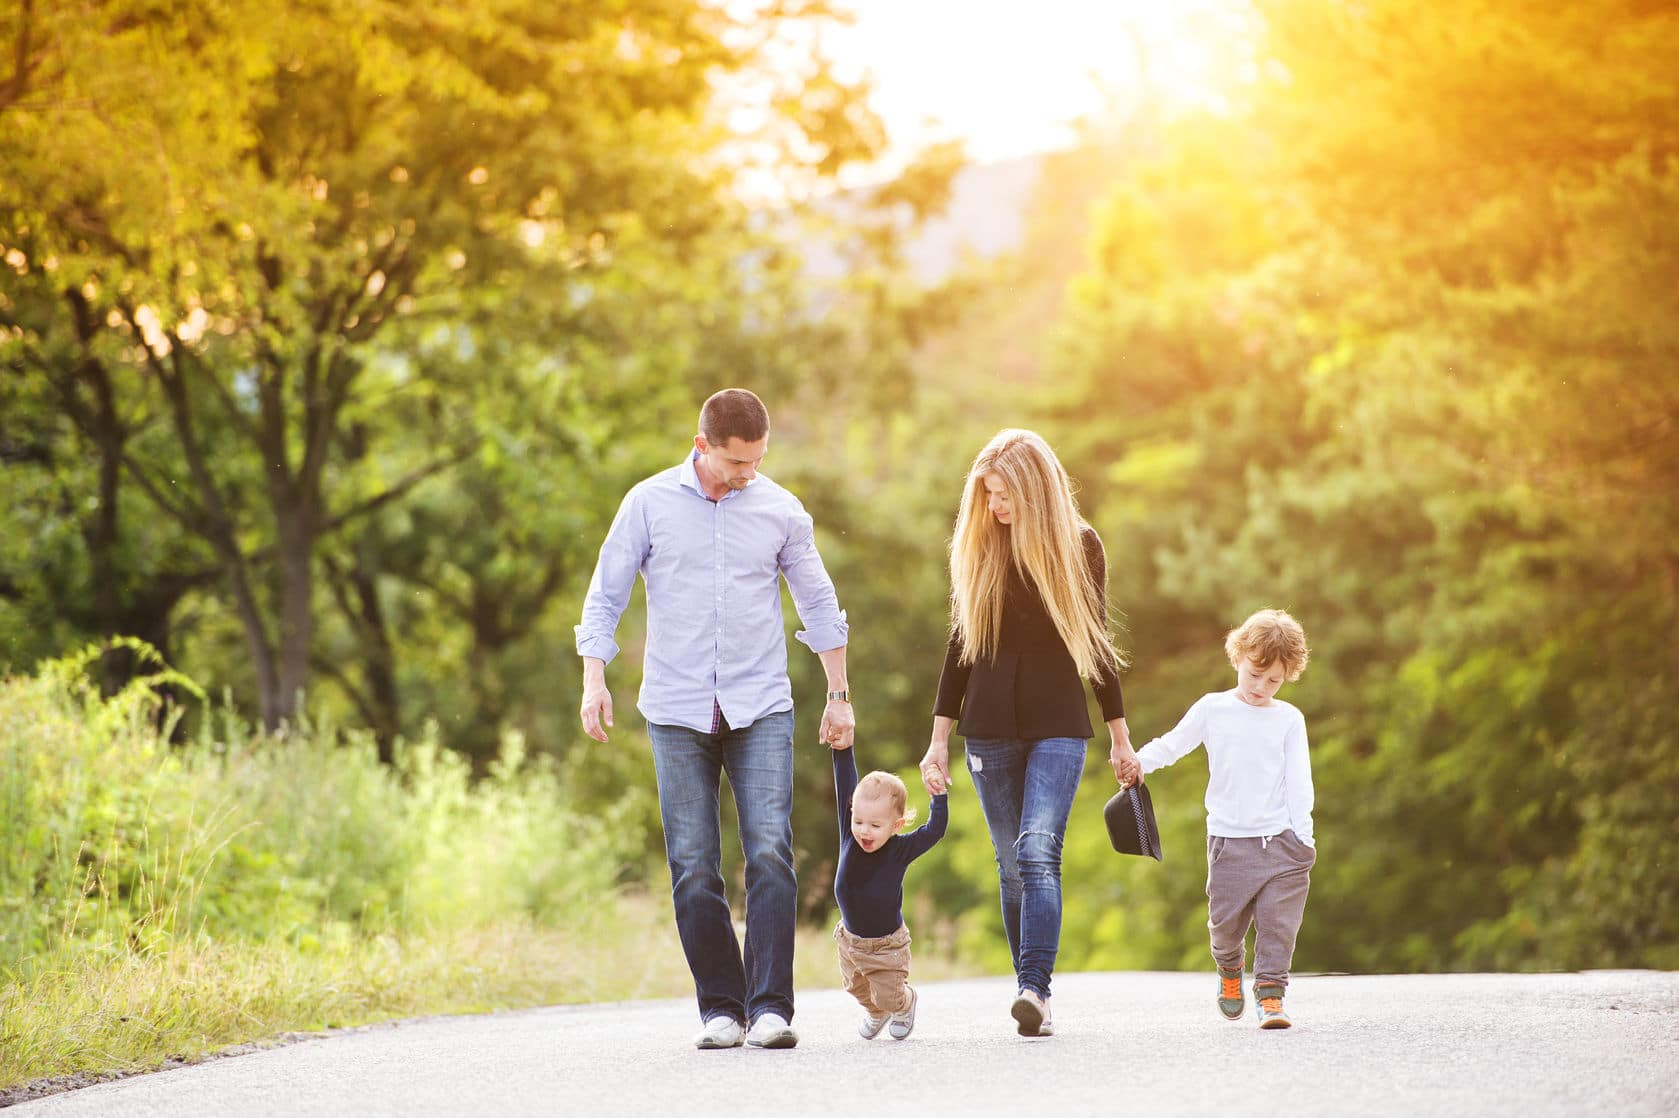 Getting outdoors is an inexpensive way for families to have fun.